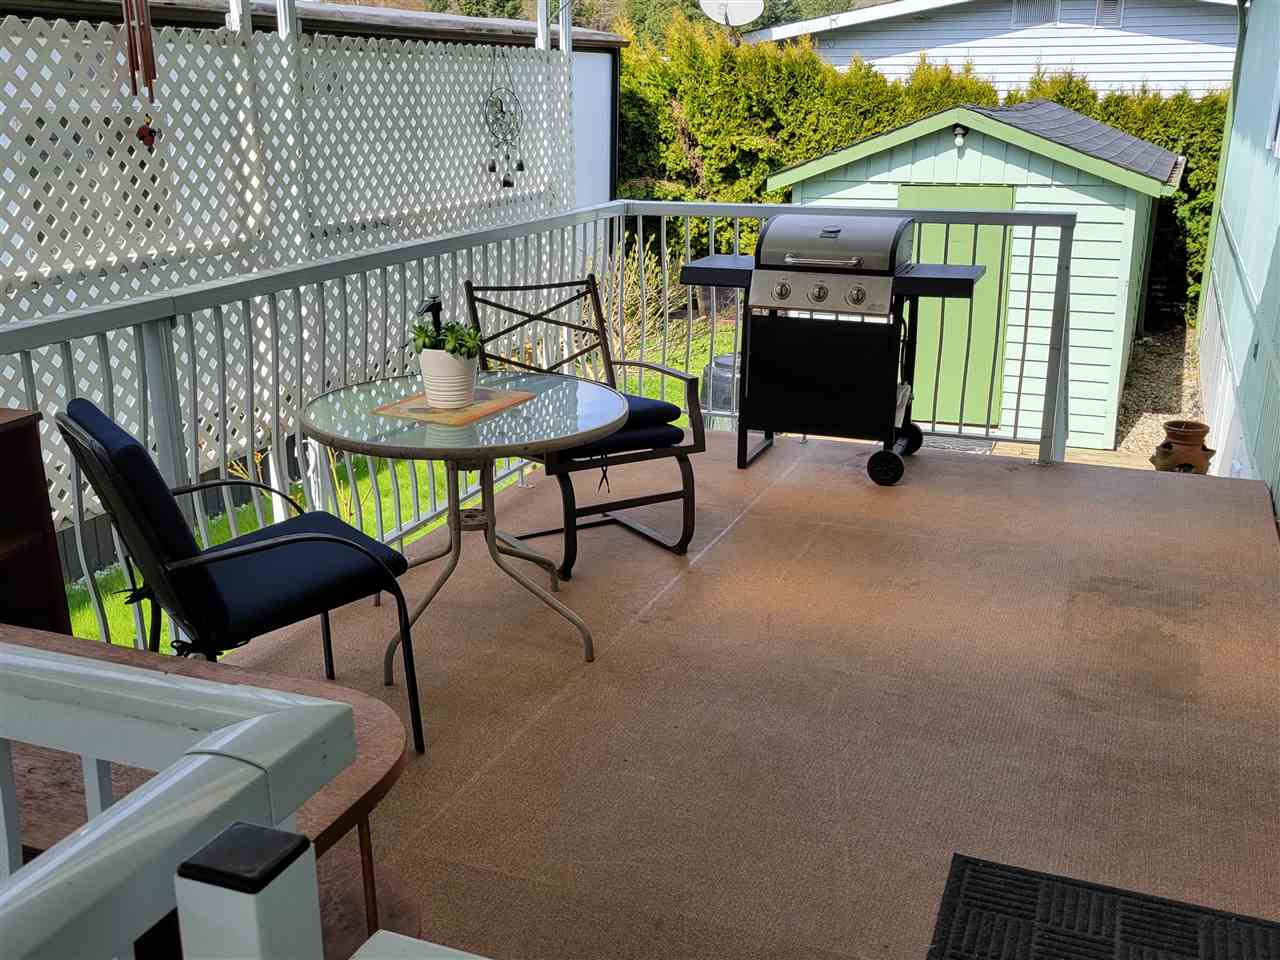 41 2315 198 STREET - Brookswood Langley Manufactured for sale, 2 Bedrooms (R2560334) - #13